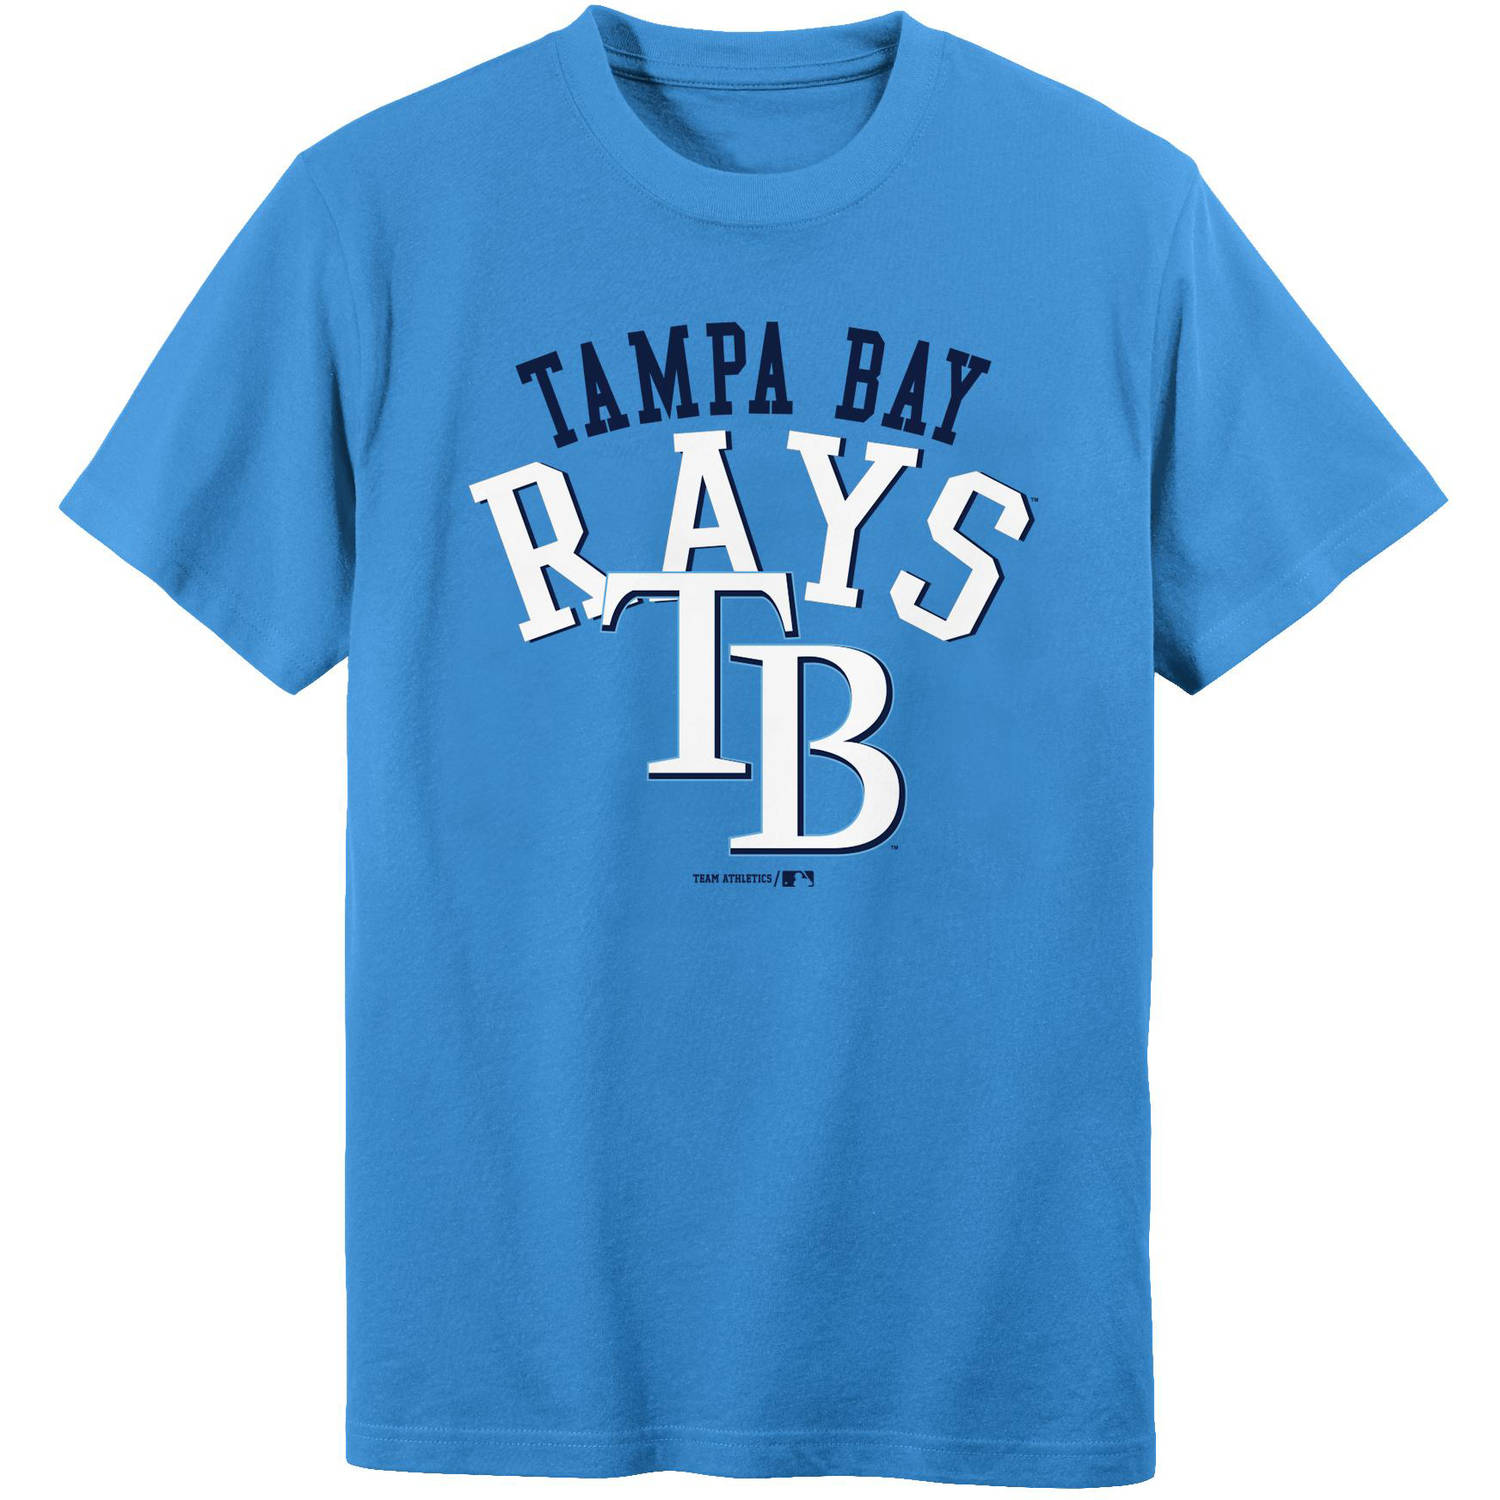 MLB Tampa Bay Rays Boys 4-18 Short Sleeve Alternate Color Tee Team